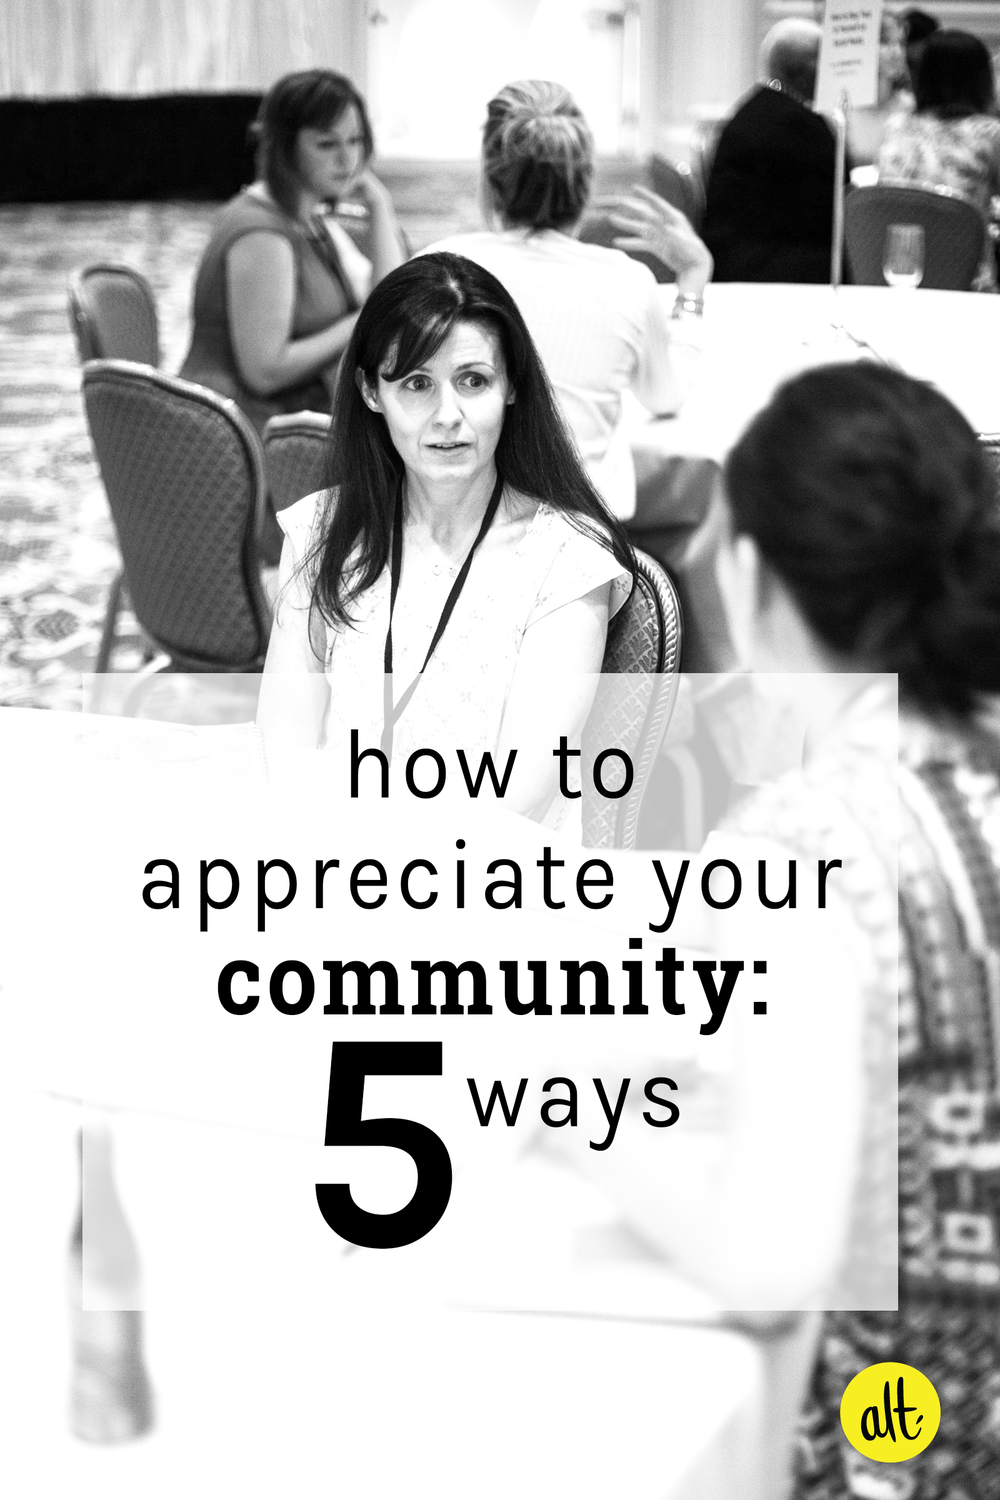 Even when you're doing something you love, there will be days when the work is hard. Often what keeps us going is our community. Here are five ways you can appreciate your community for supporting you.